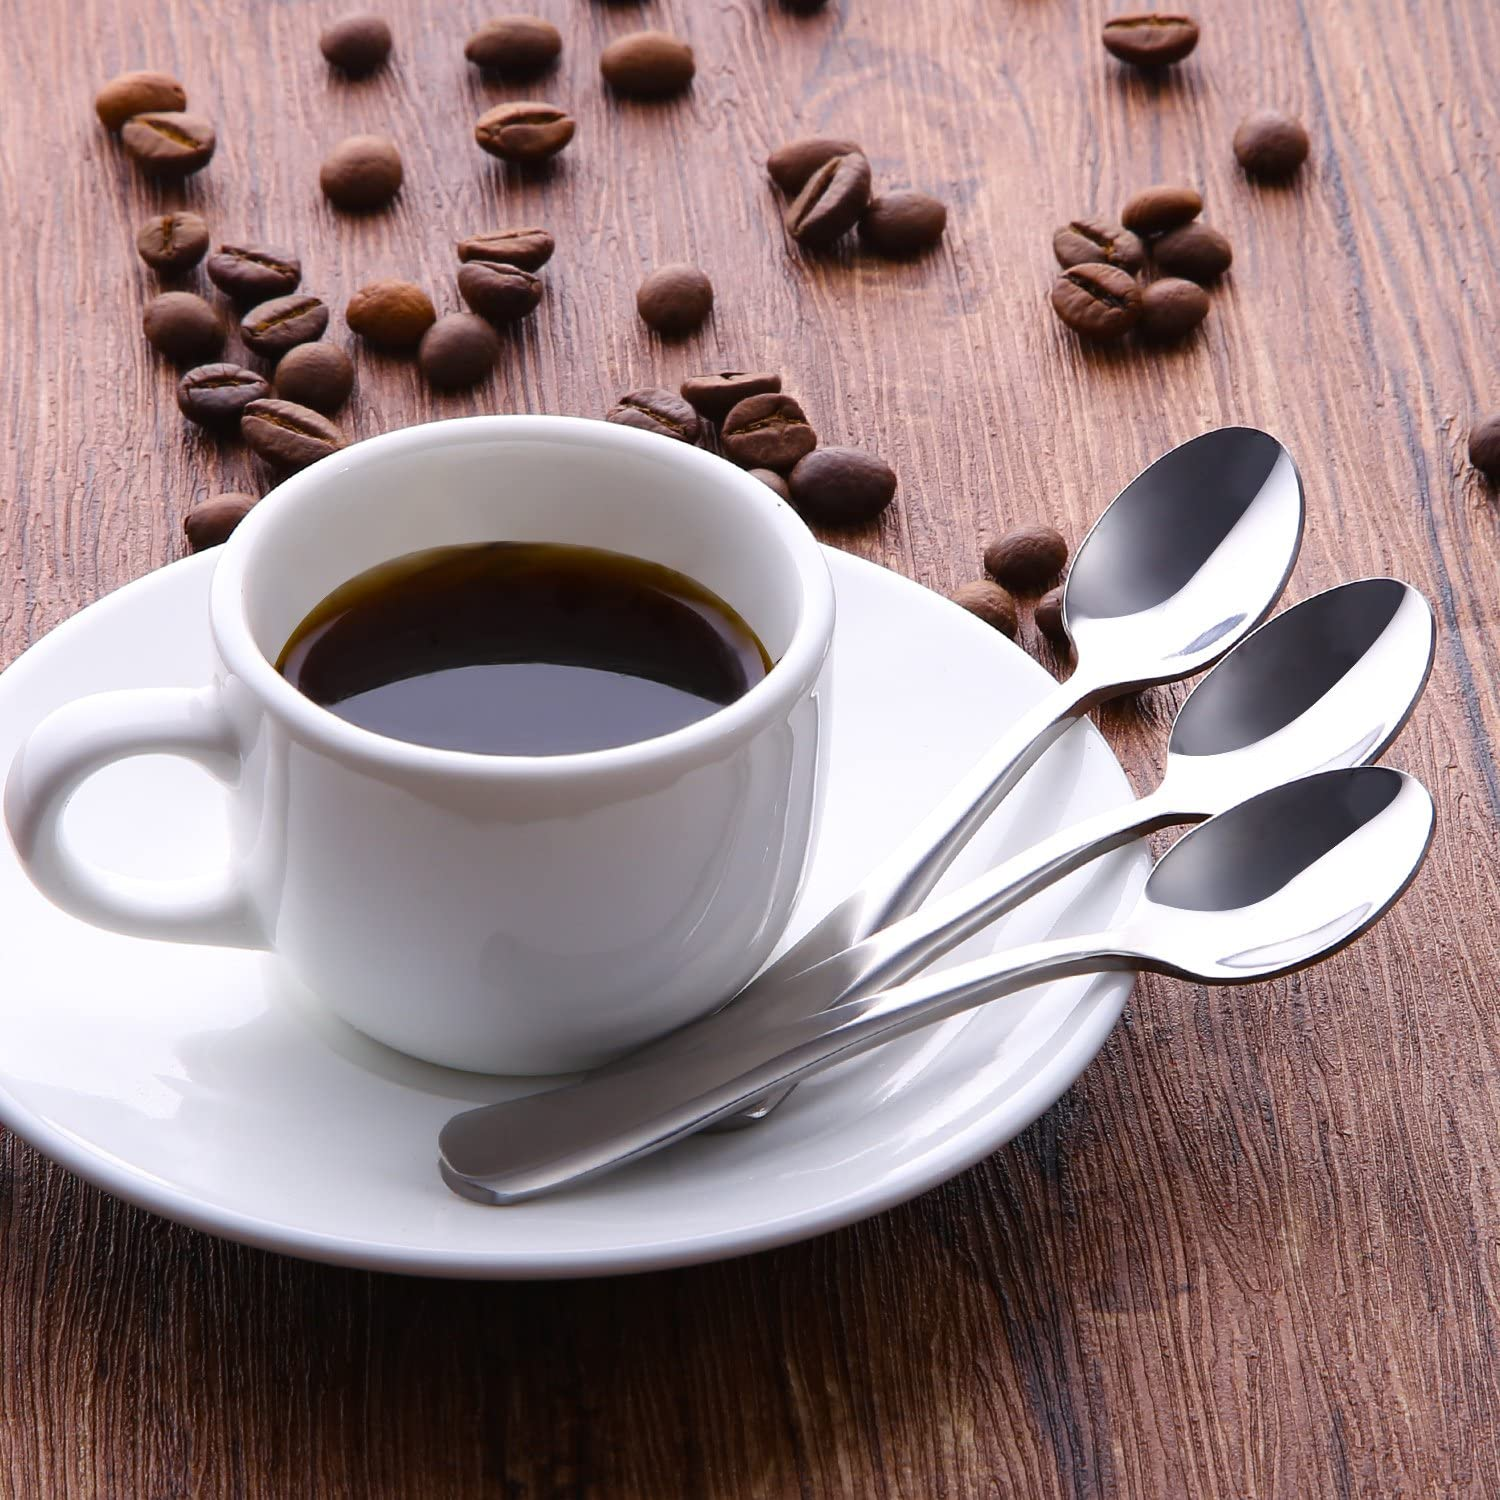 4 Inches Stainless Steel Mini Coffee Spoons Hiware 12-Piece Demitasse Espresso Spoons